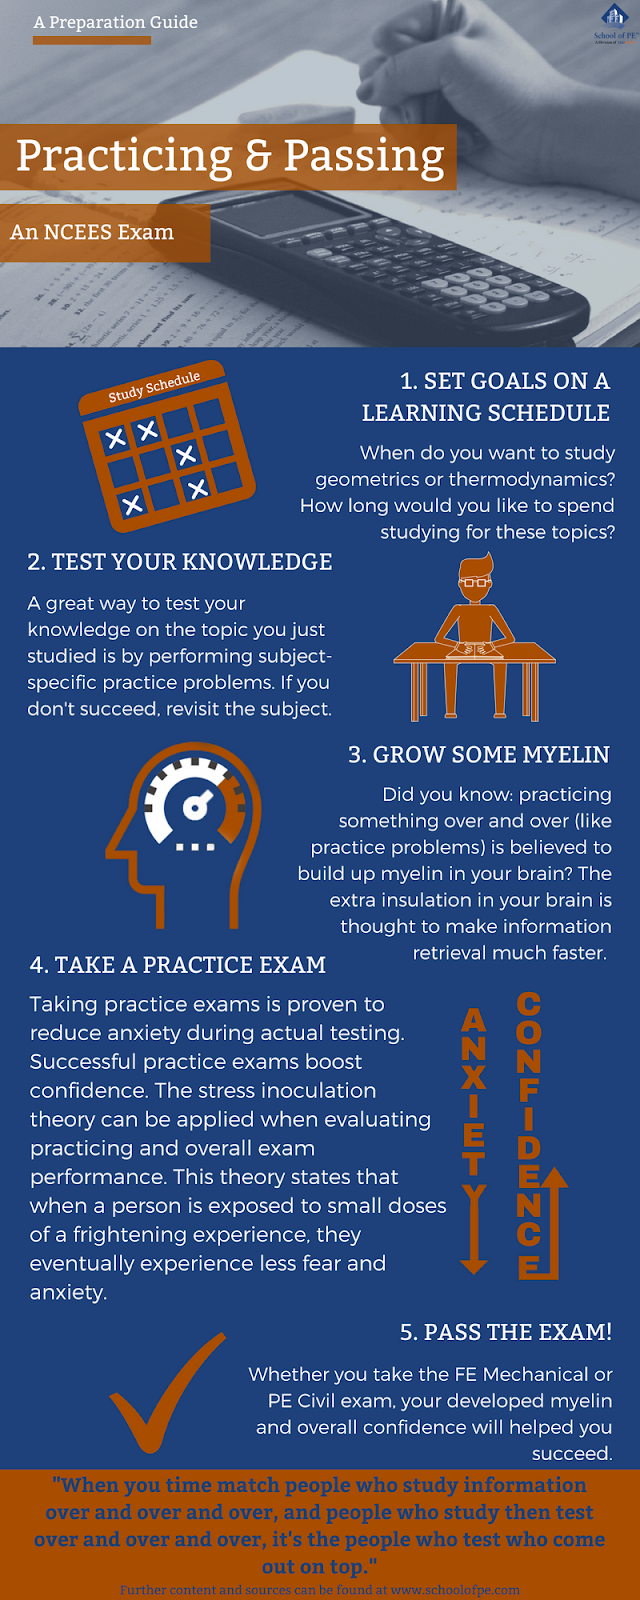 Practicing is an important step in preparing for an NCEES exam. Taking practice exams can reduce anxiety and increase confidence, which can help you pass your exam.